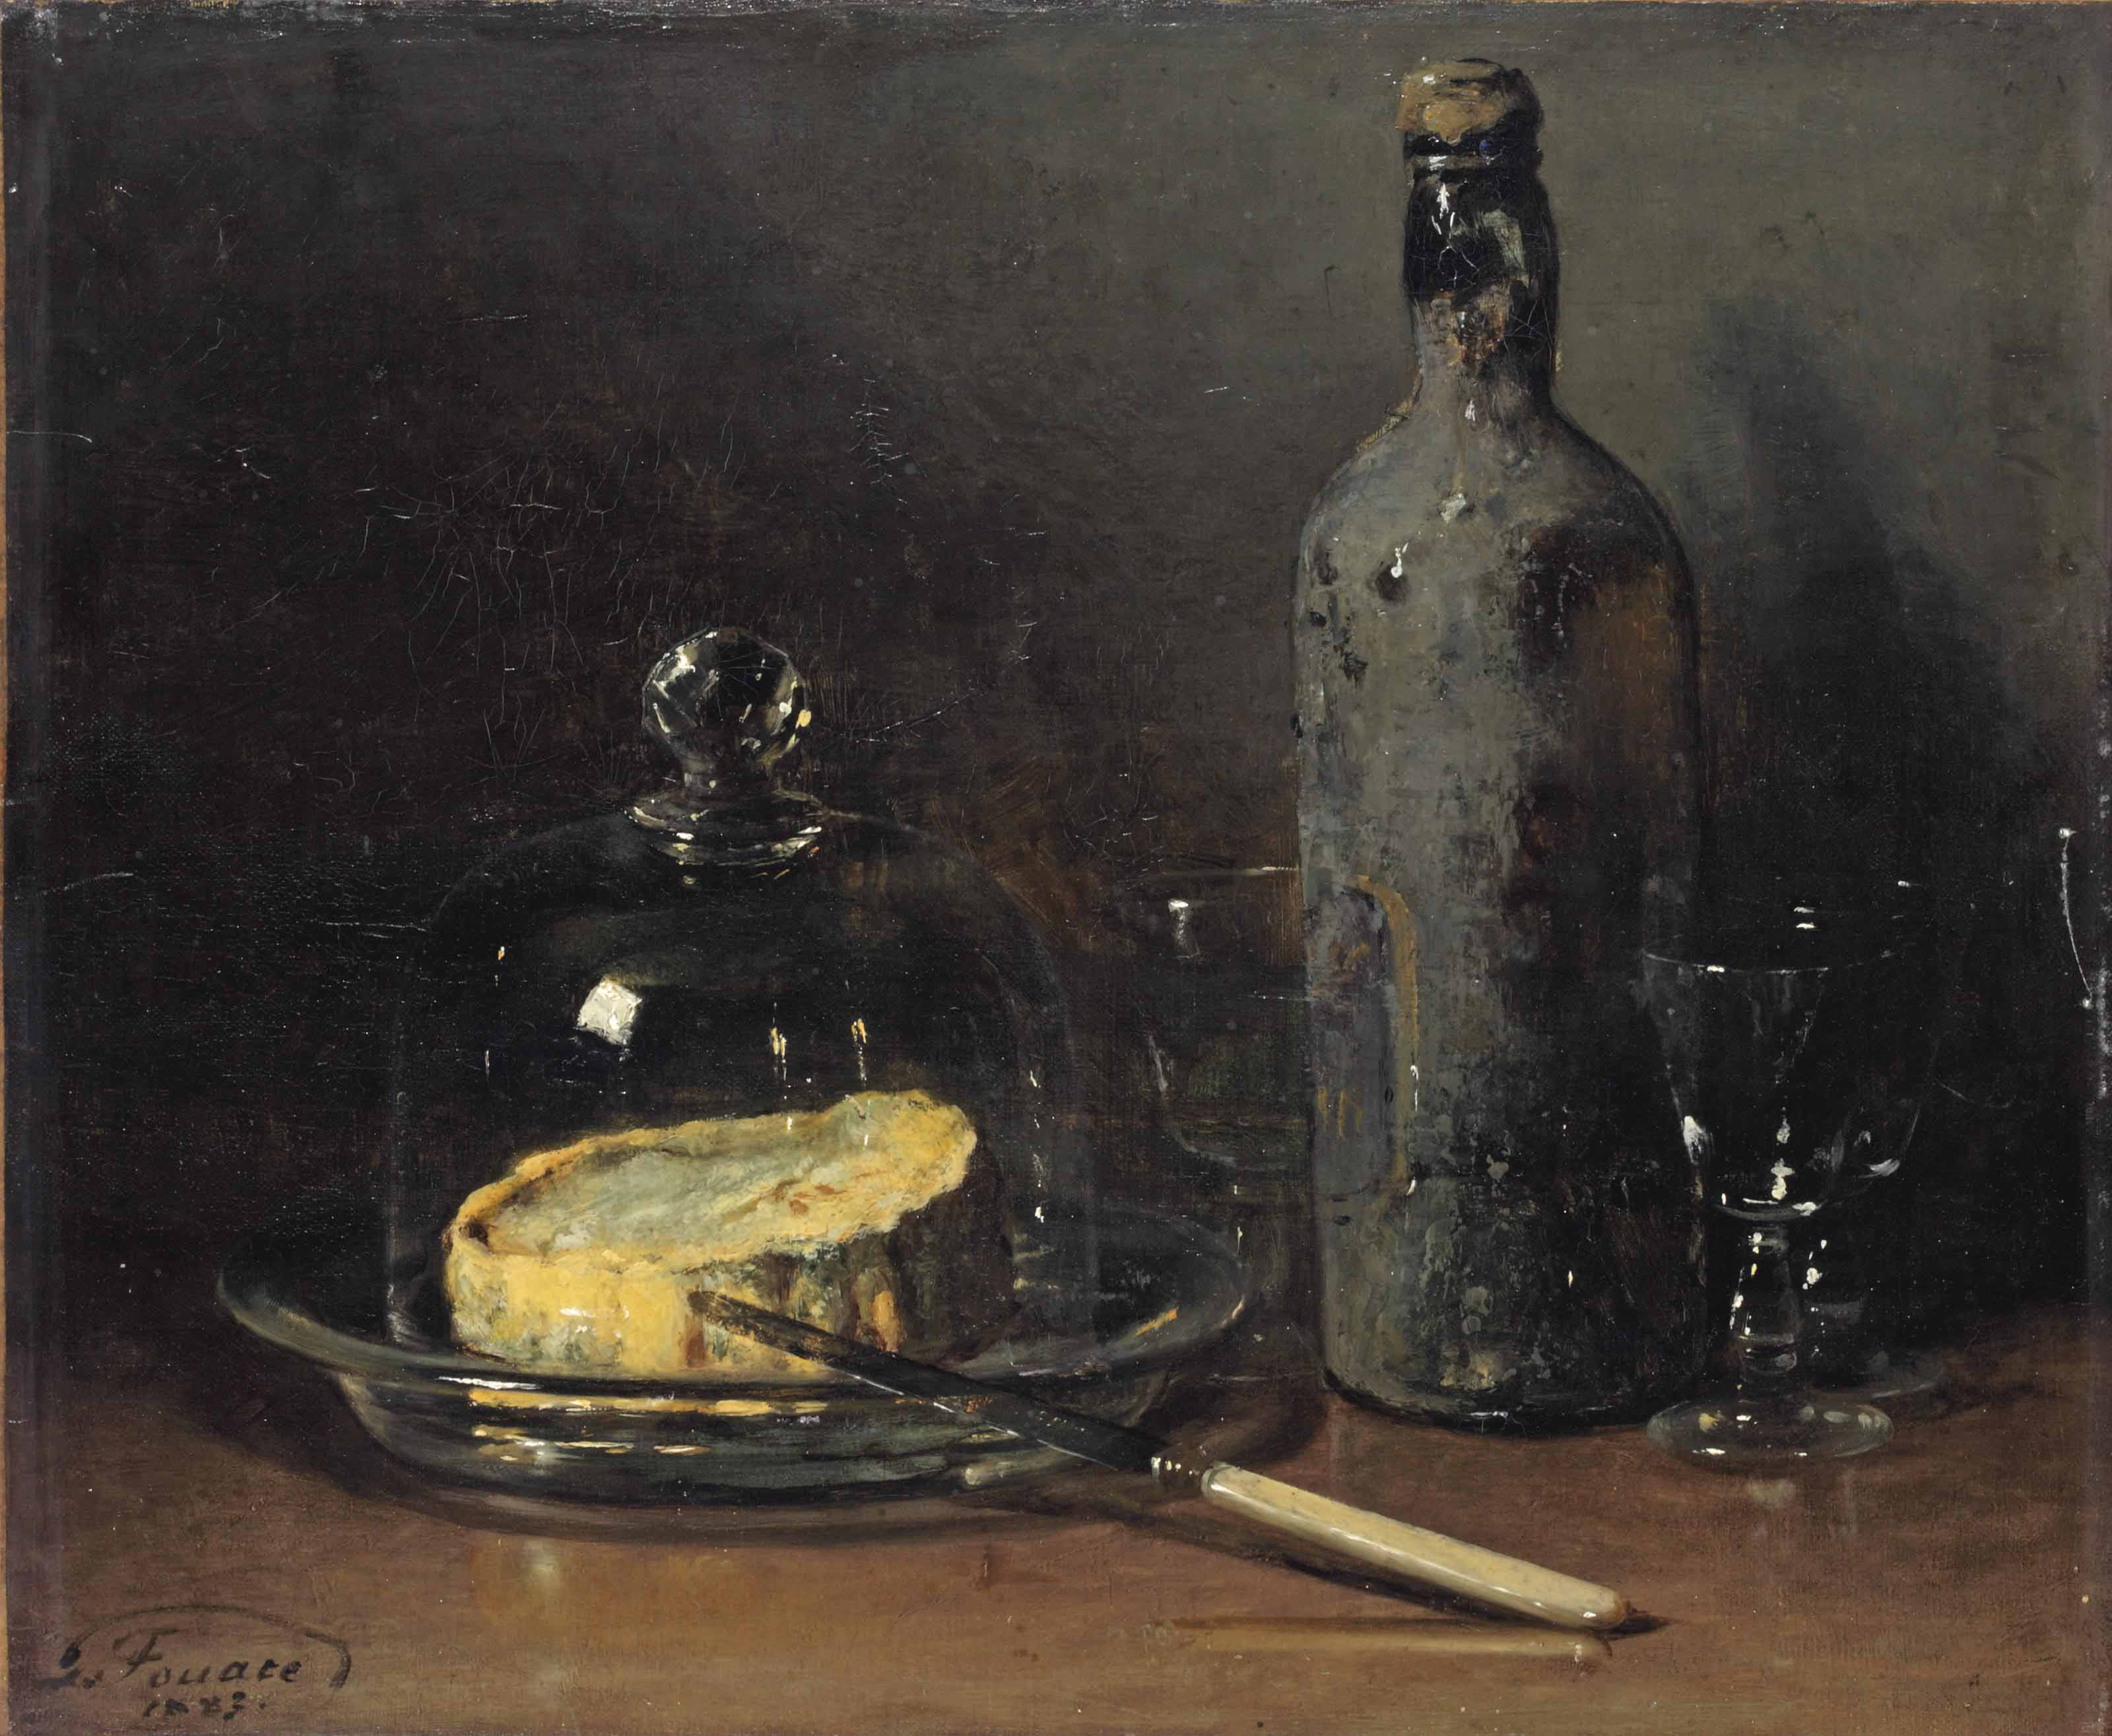 A still life with cheese and wine